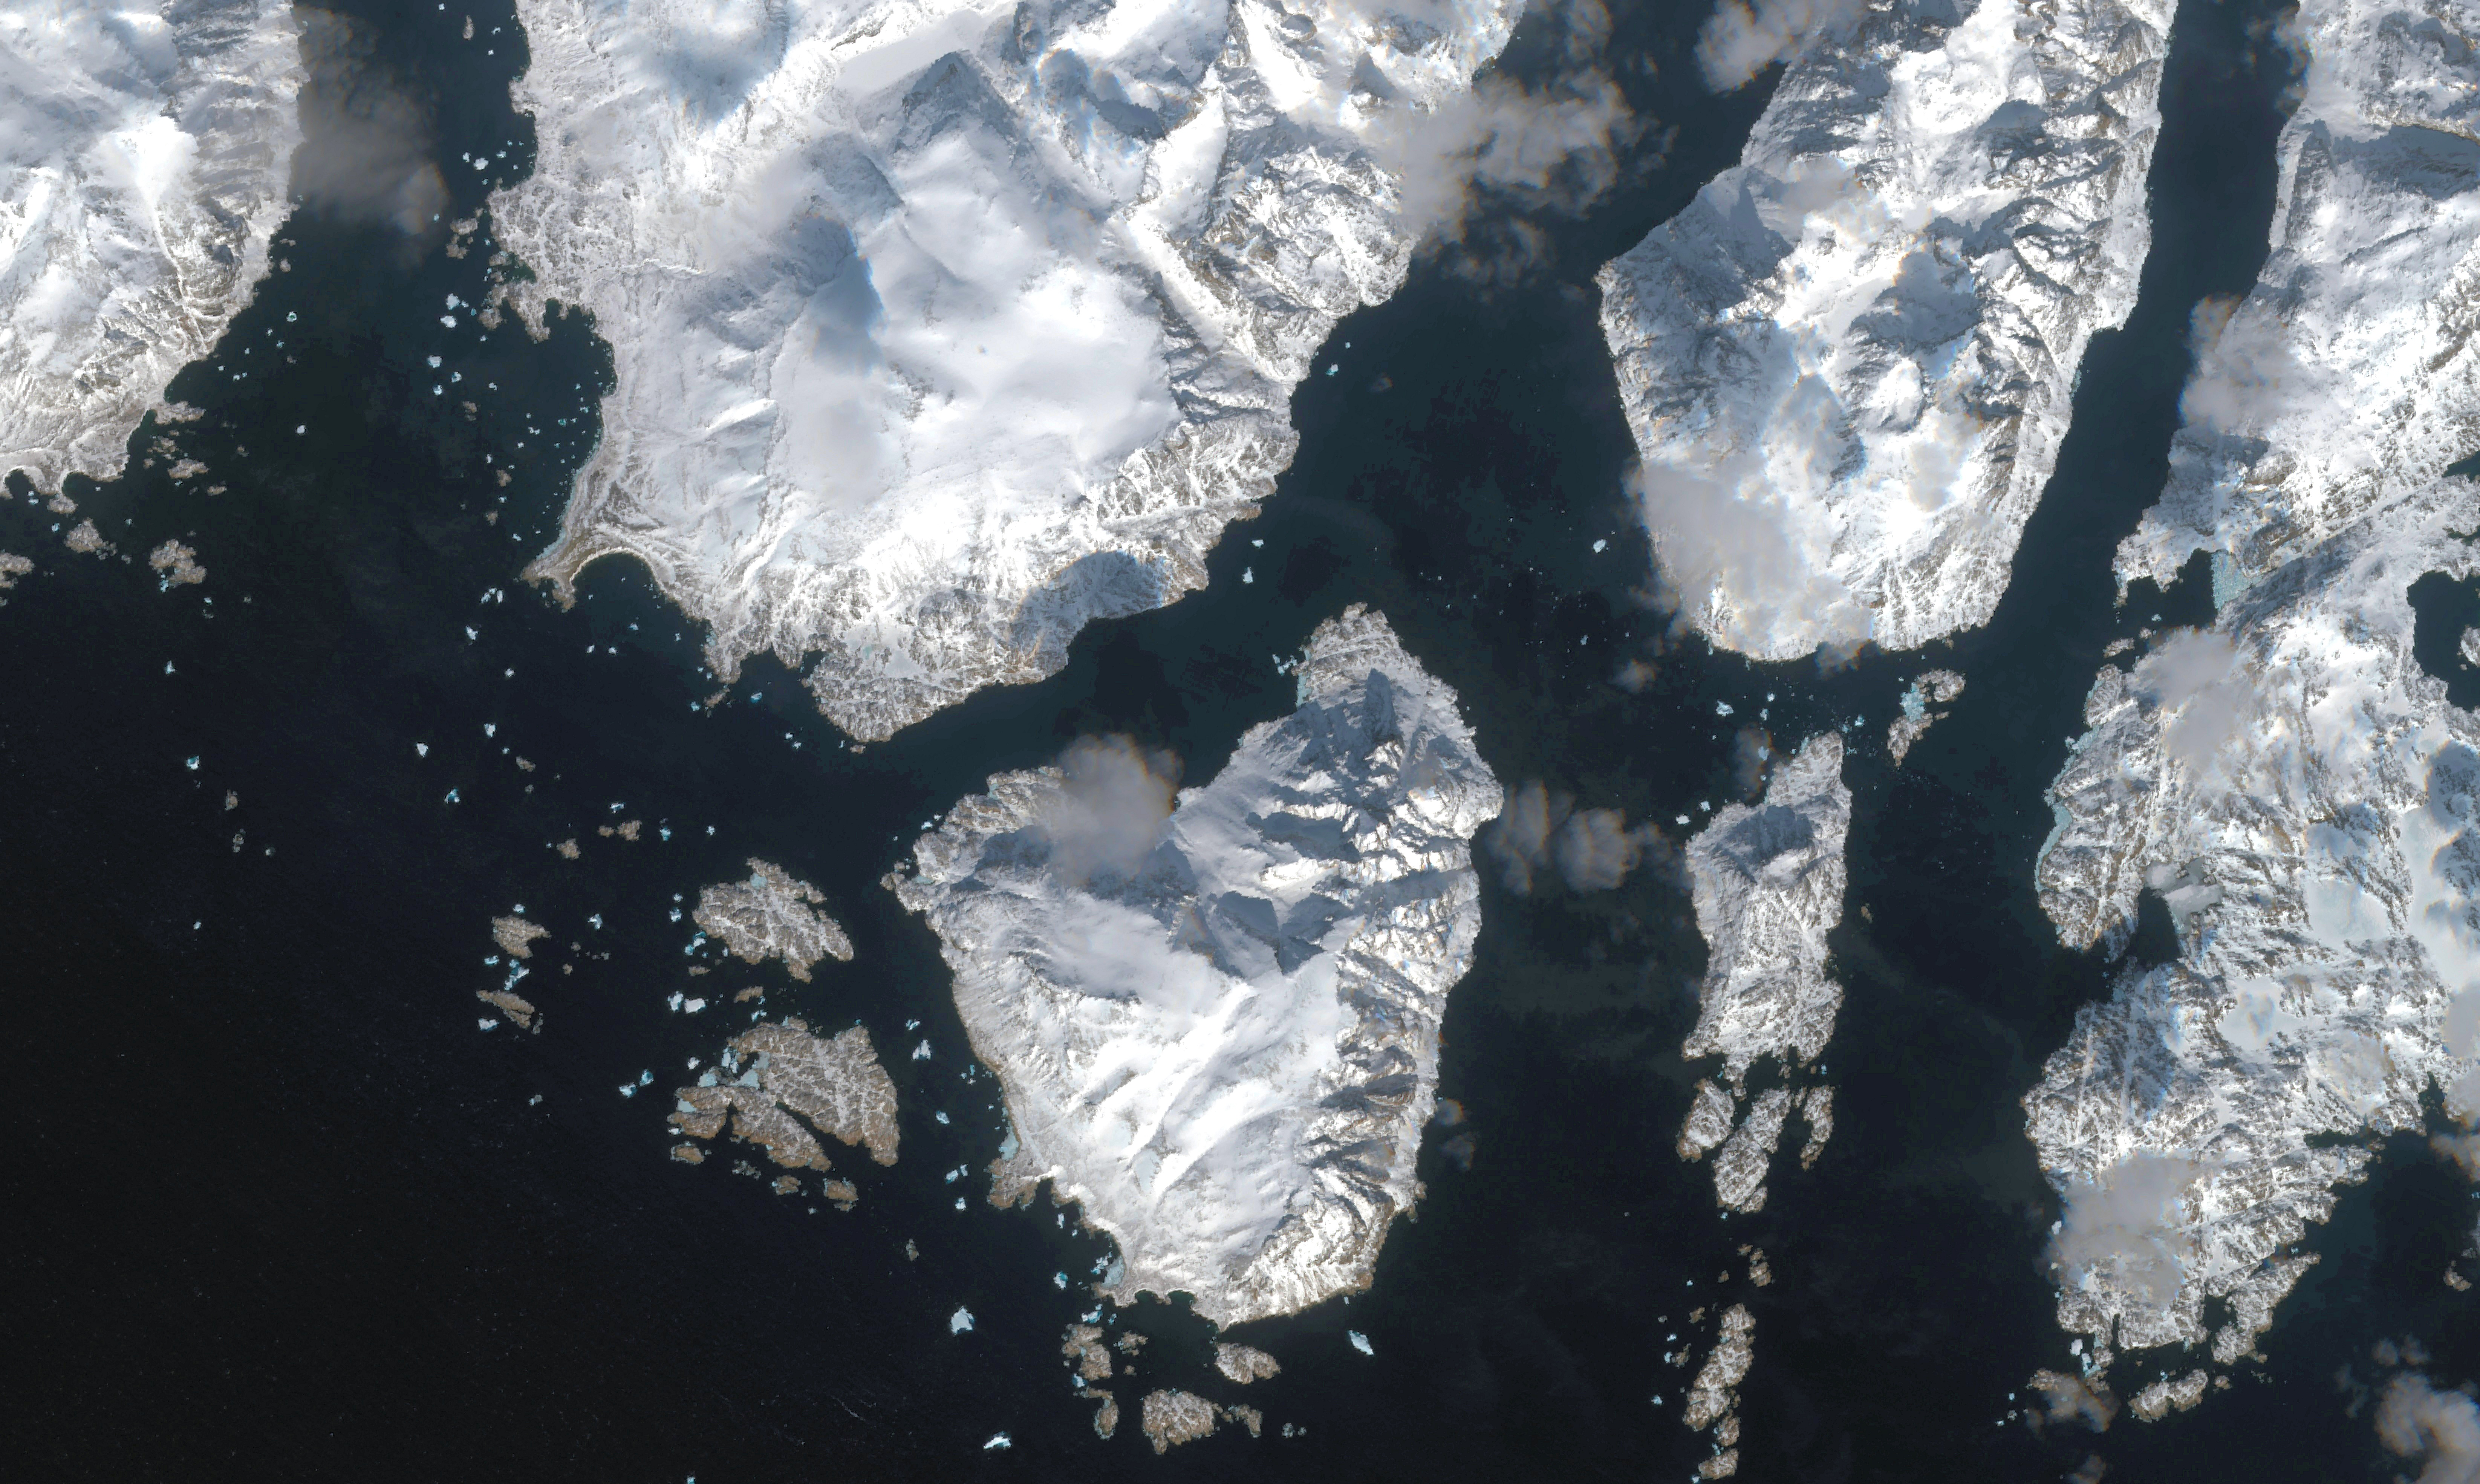 Ice services for navigators in Greenland will now come solely from satellite imagery